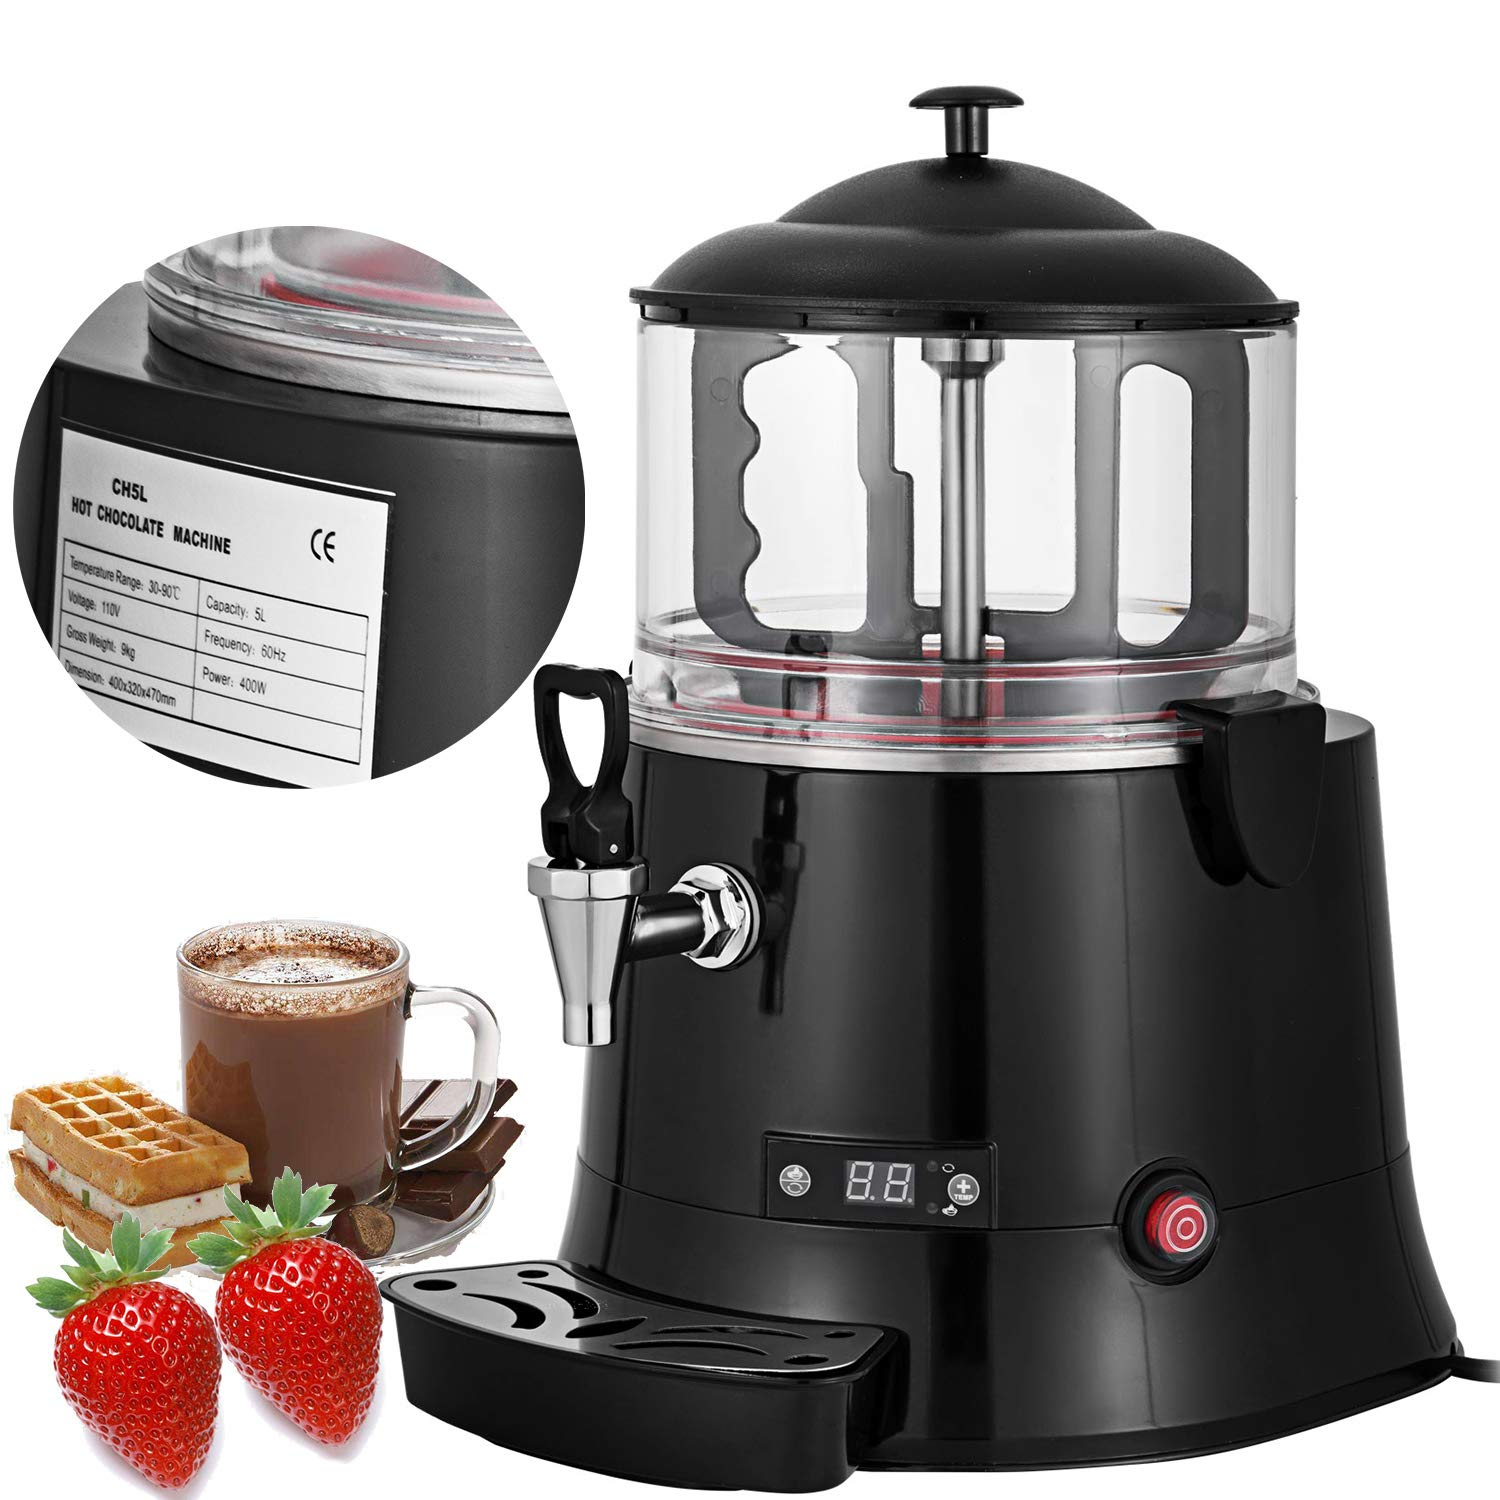 VEVOR Commercial Hot Chocolate Machine 400W Chocolate Beverage Dispenser 5 Liter Hot Chocolate Maker & Milk Frother 110V Beverage Dispenser Machine for Restaurants Bakeries Cafes